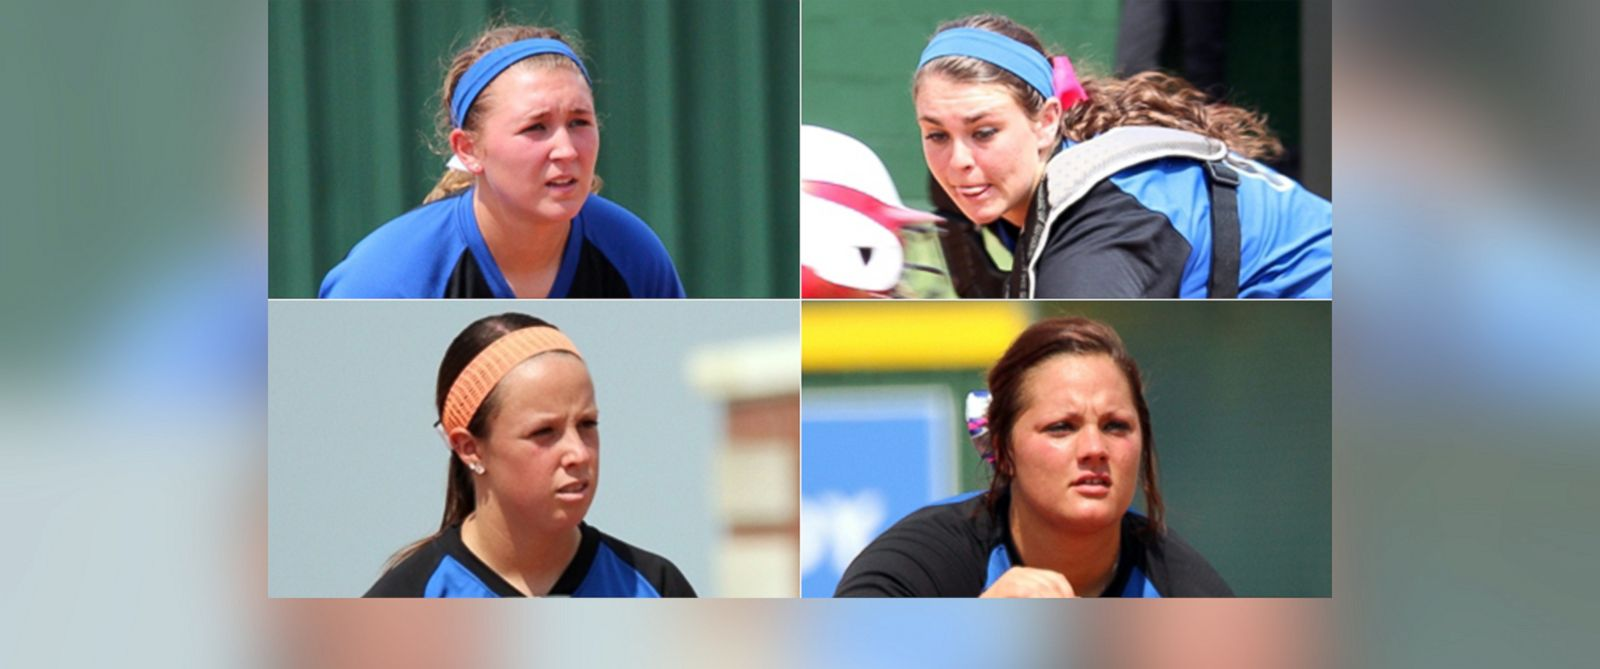 PHOTO: Clockwise from top left, photos released by North Central Texas College in Gainseville, Texas, show softball players Katelynn Woodlee, Jaiden Pelton, Brooke Deckard and Meagan Richardson.